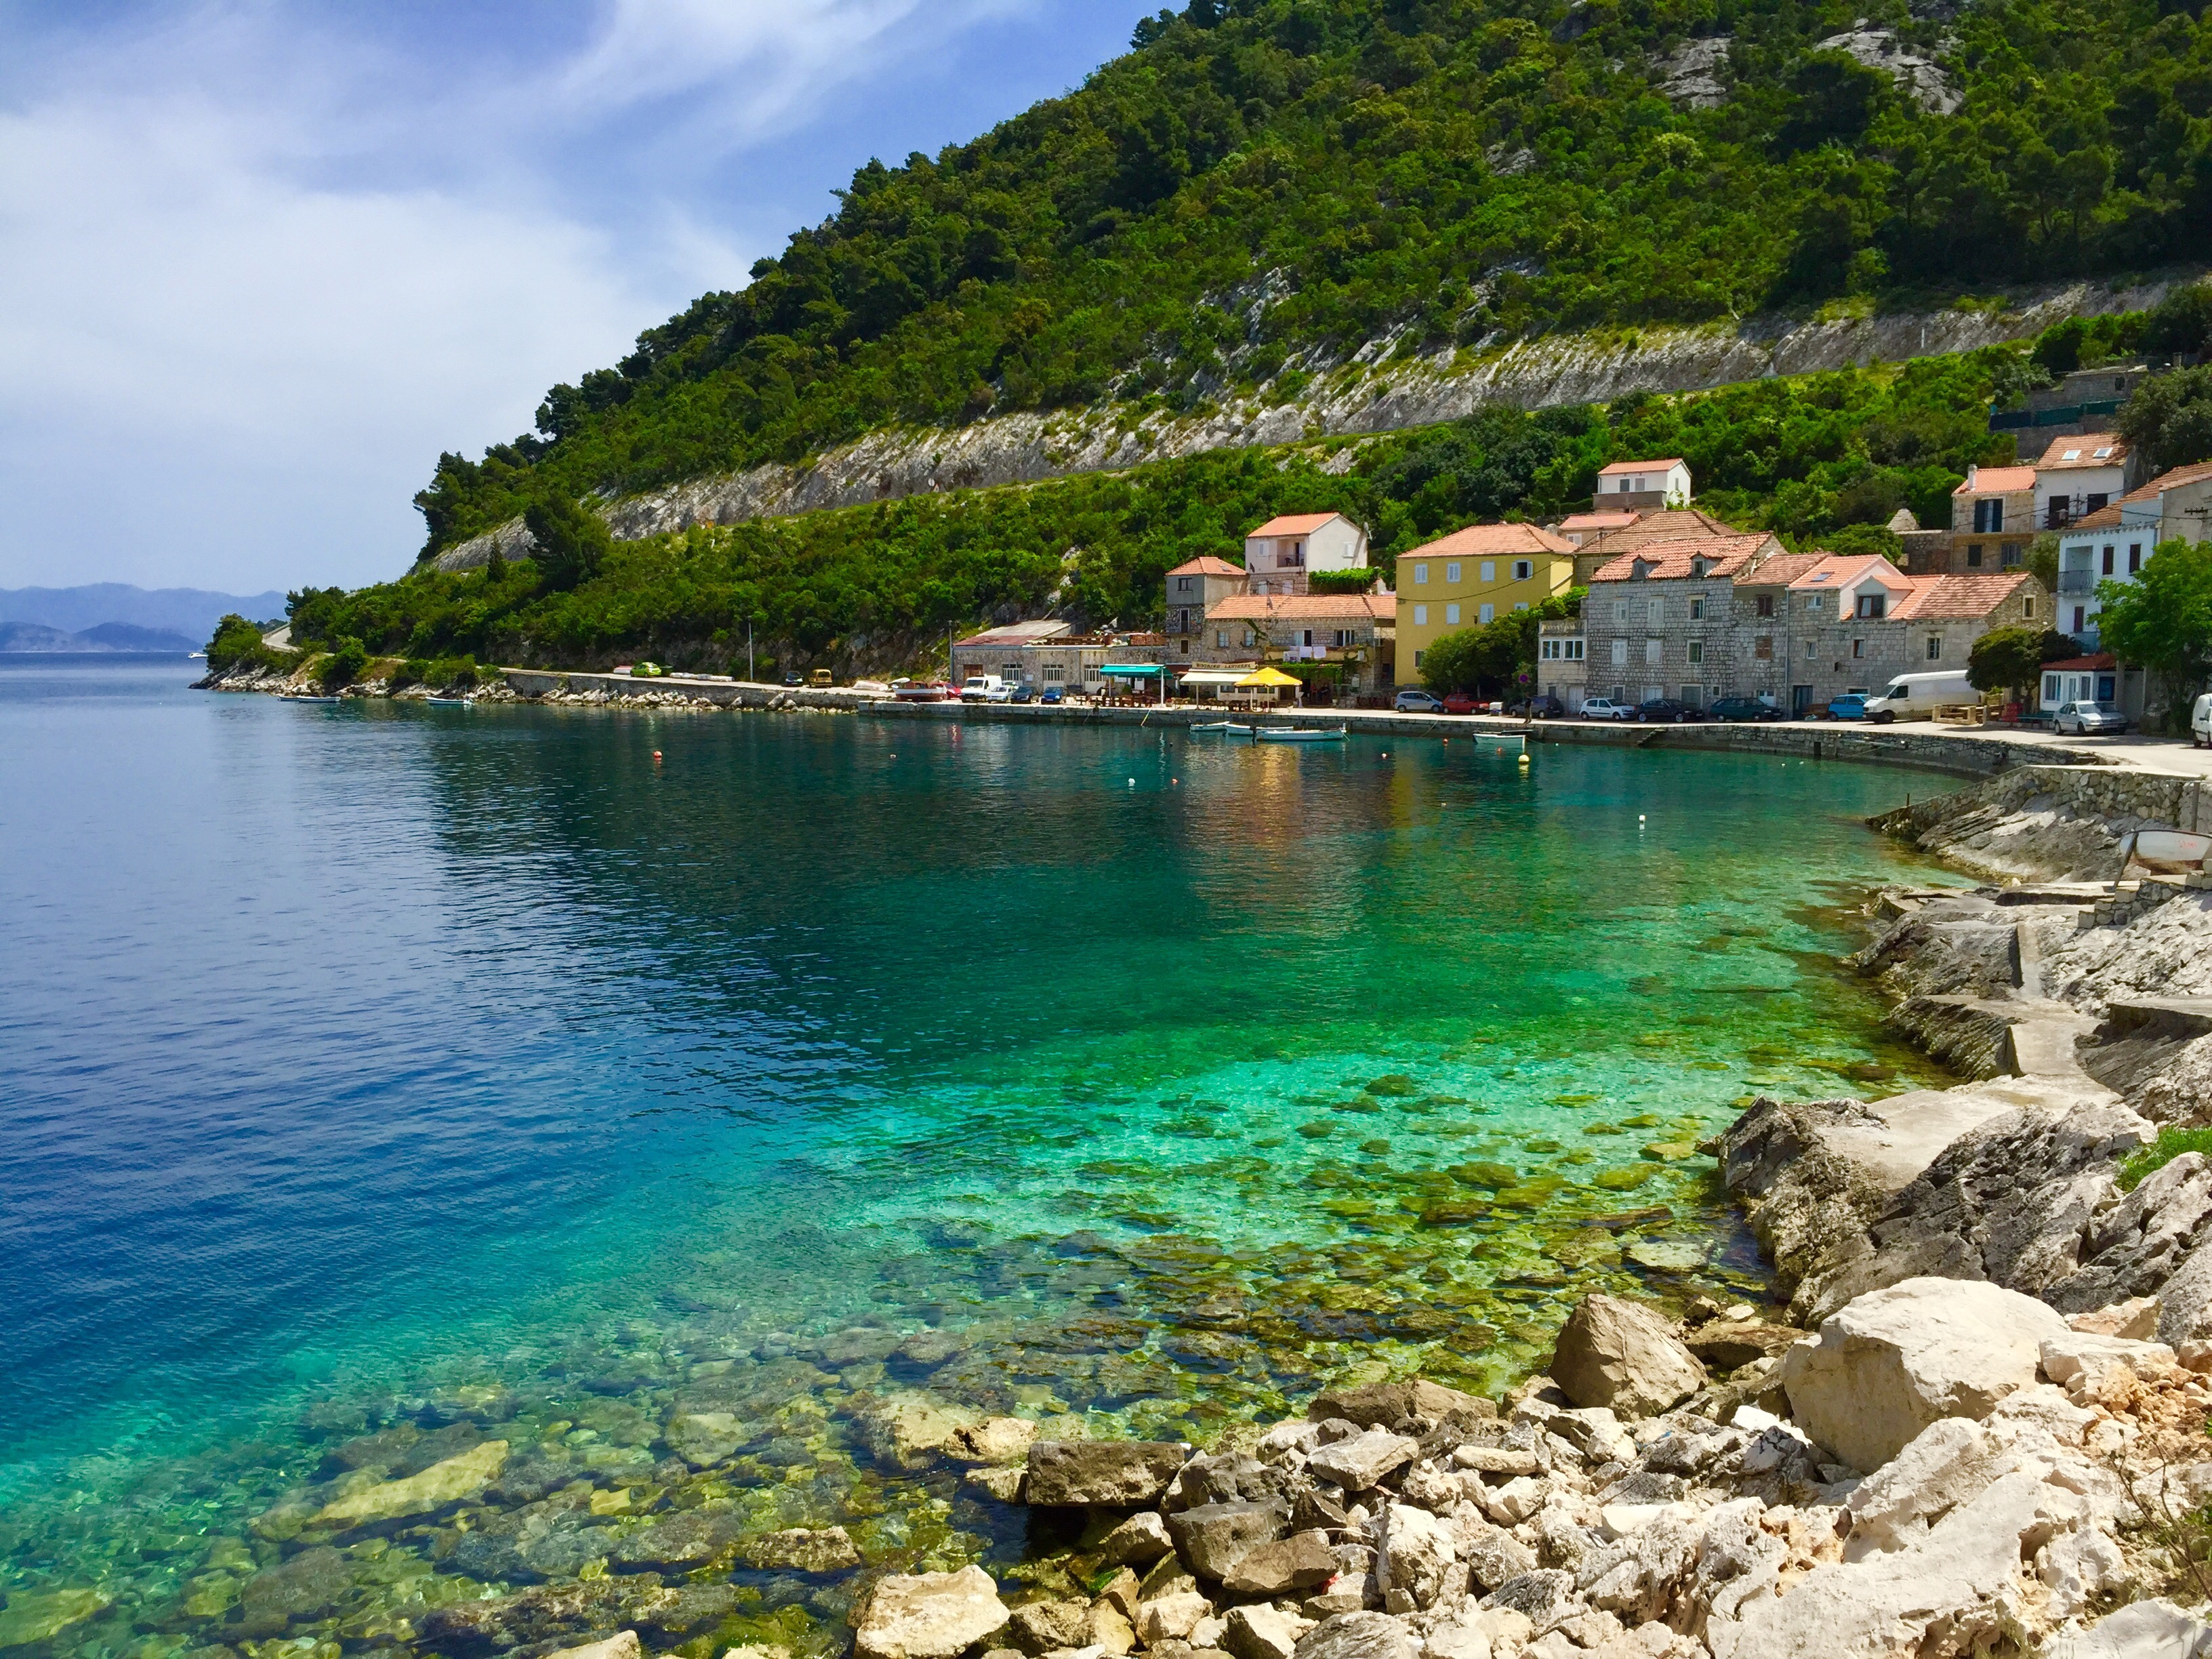 National park Mljet - great place for sailing in Croatia